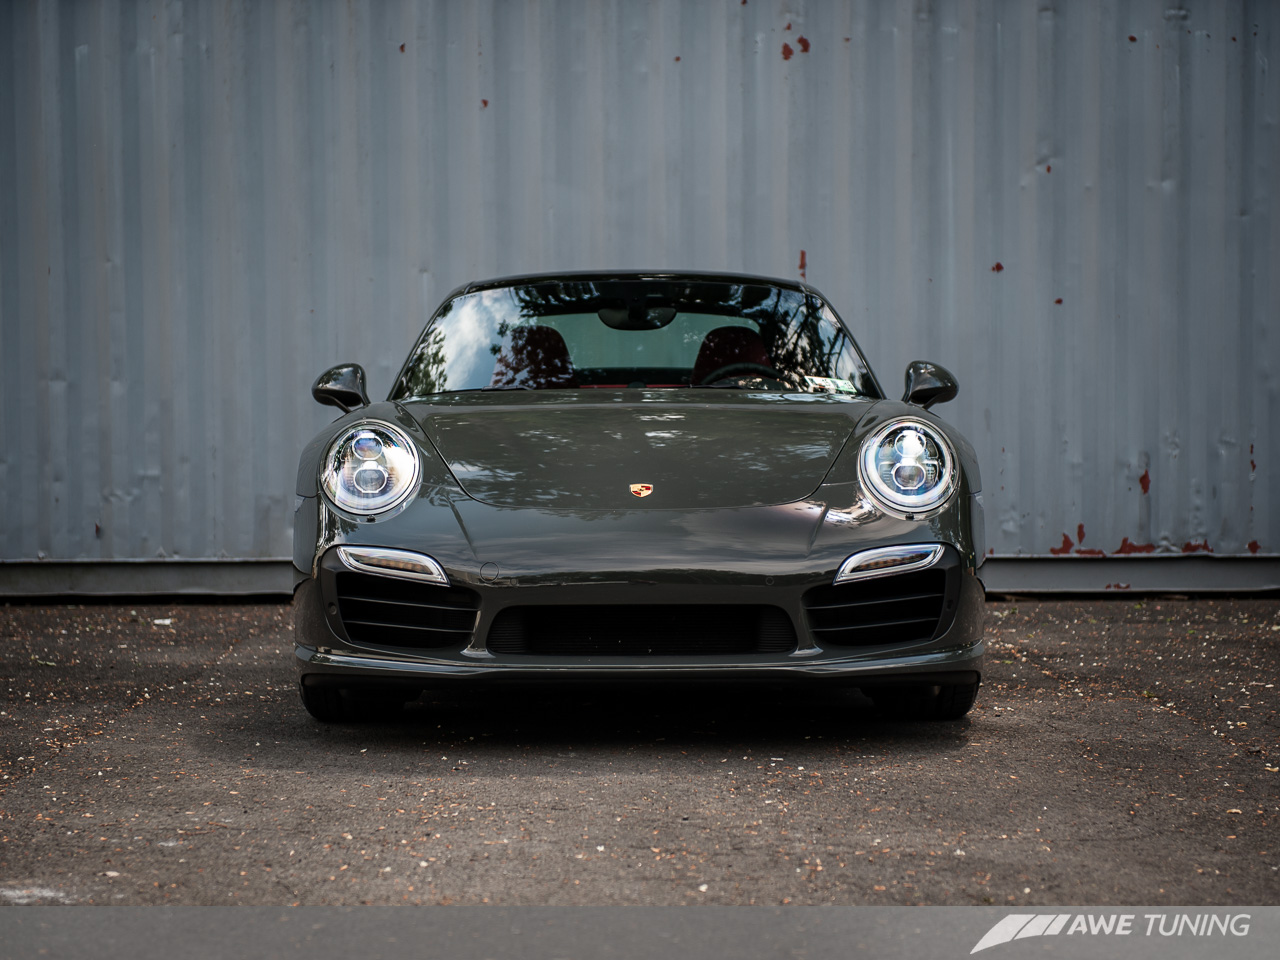 A special shade of gray  Meet the new AWE Tuning Porsche 991